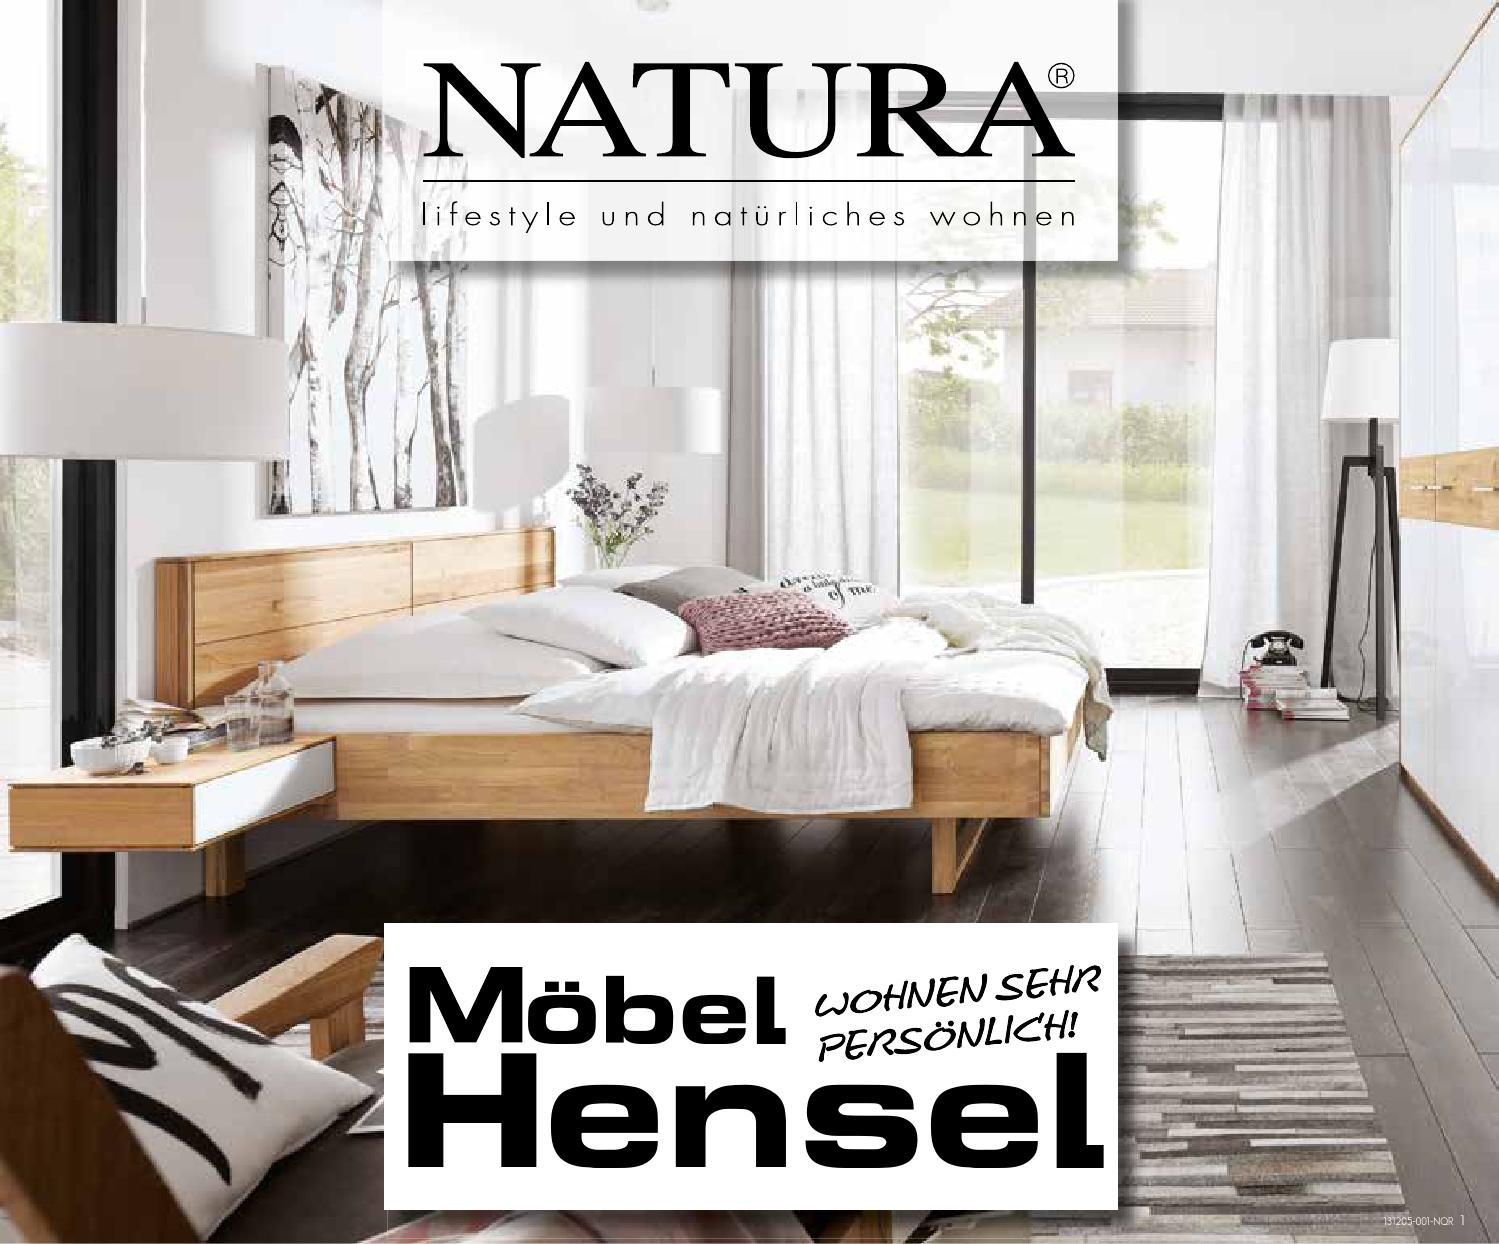 natura lifestyle und nat rliches wohnen by m bel hensel. Black Bedroom Furniture Sets. Home Design Ideas